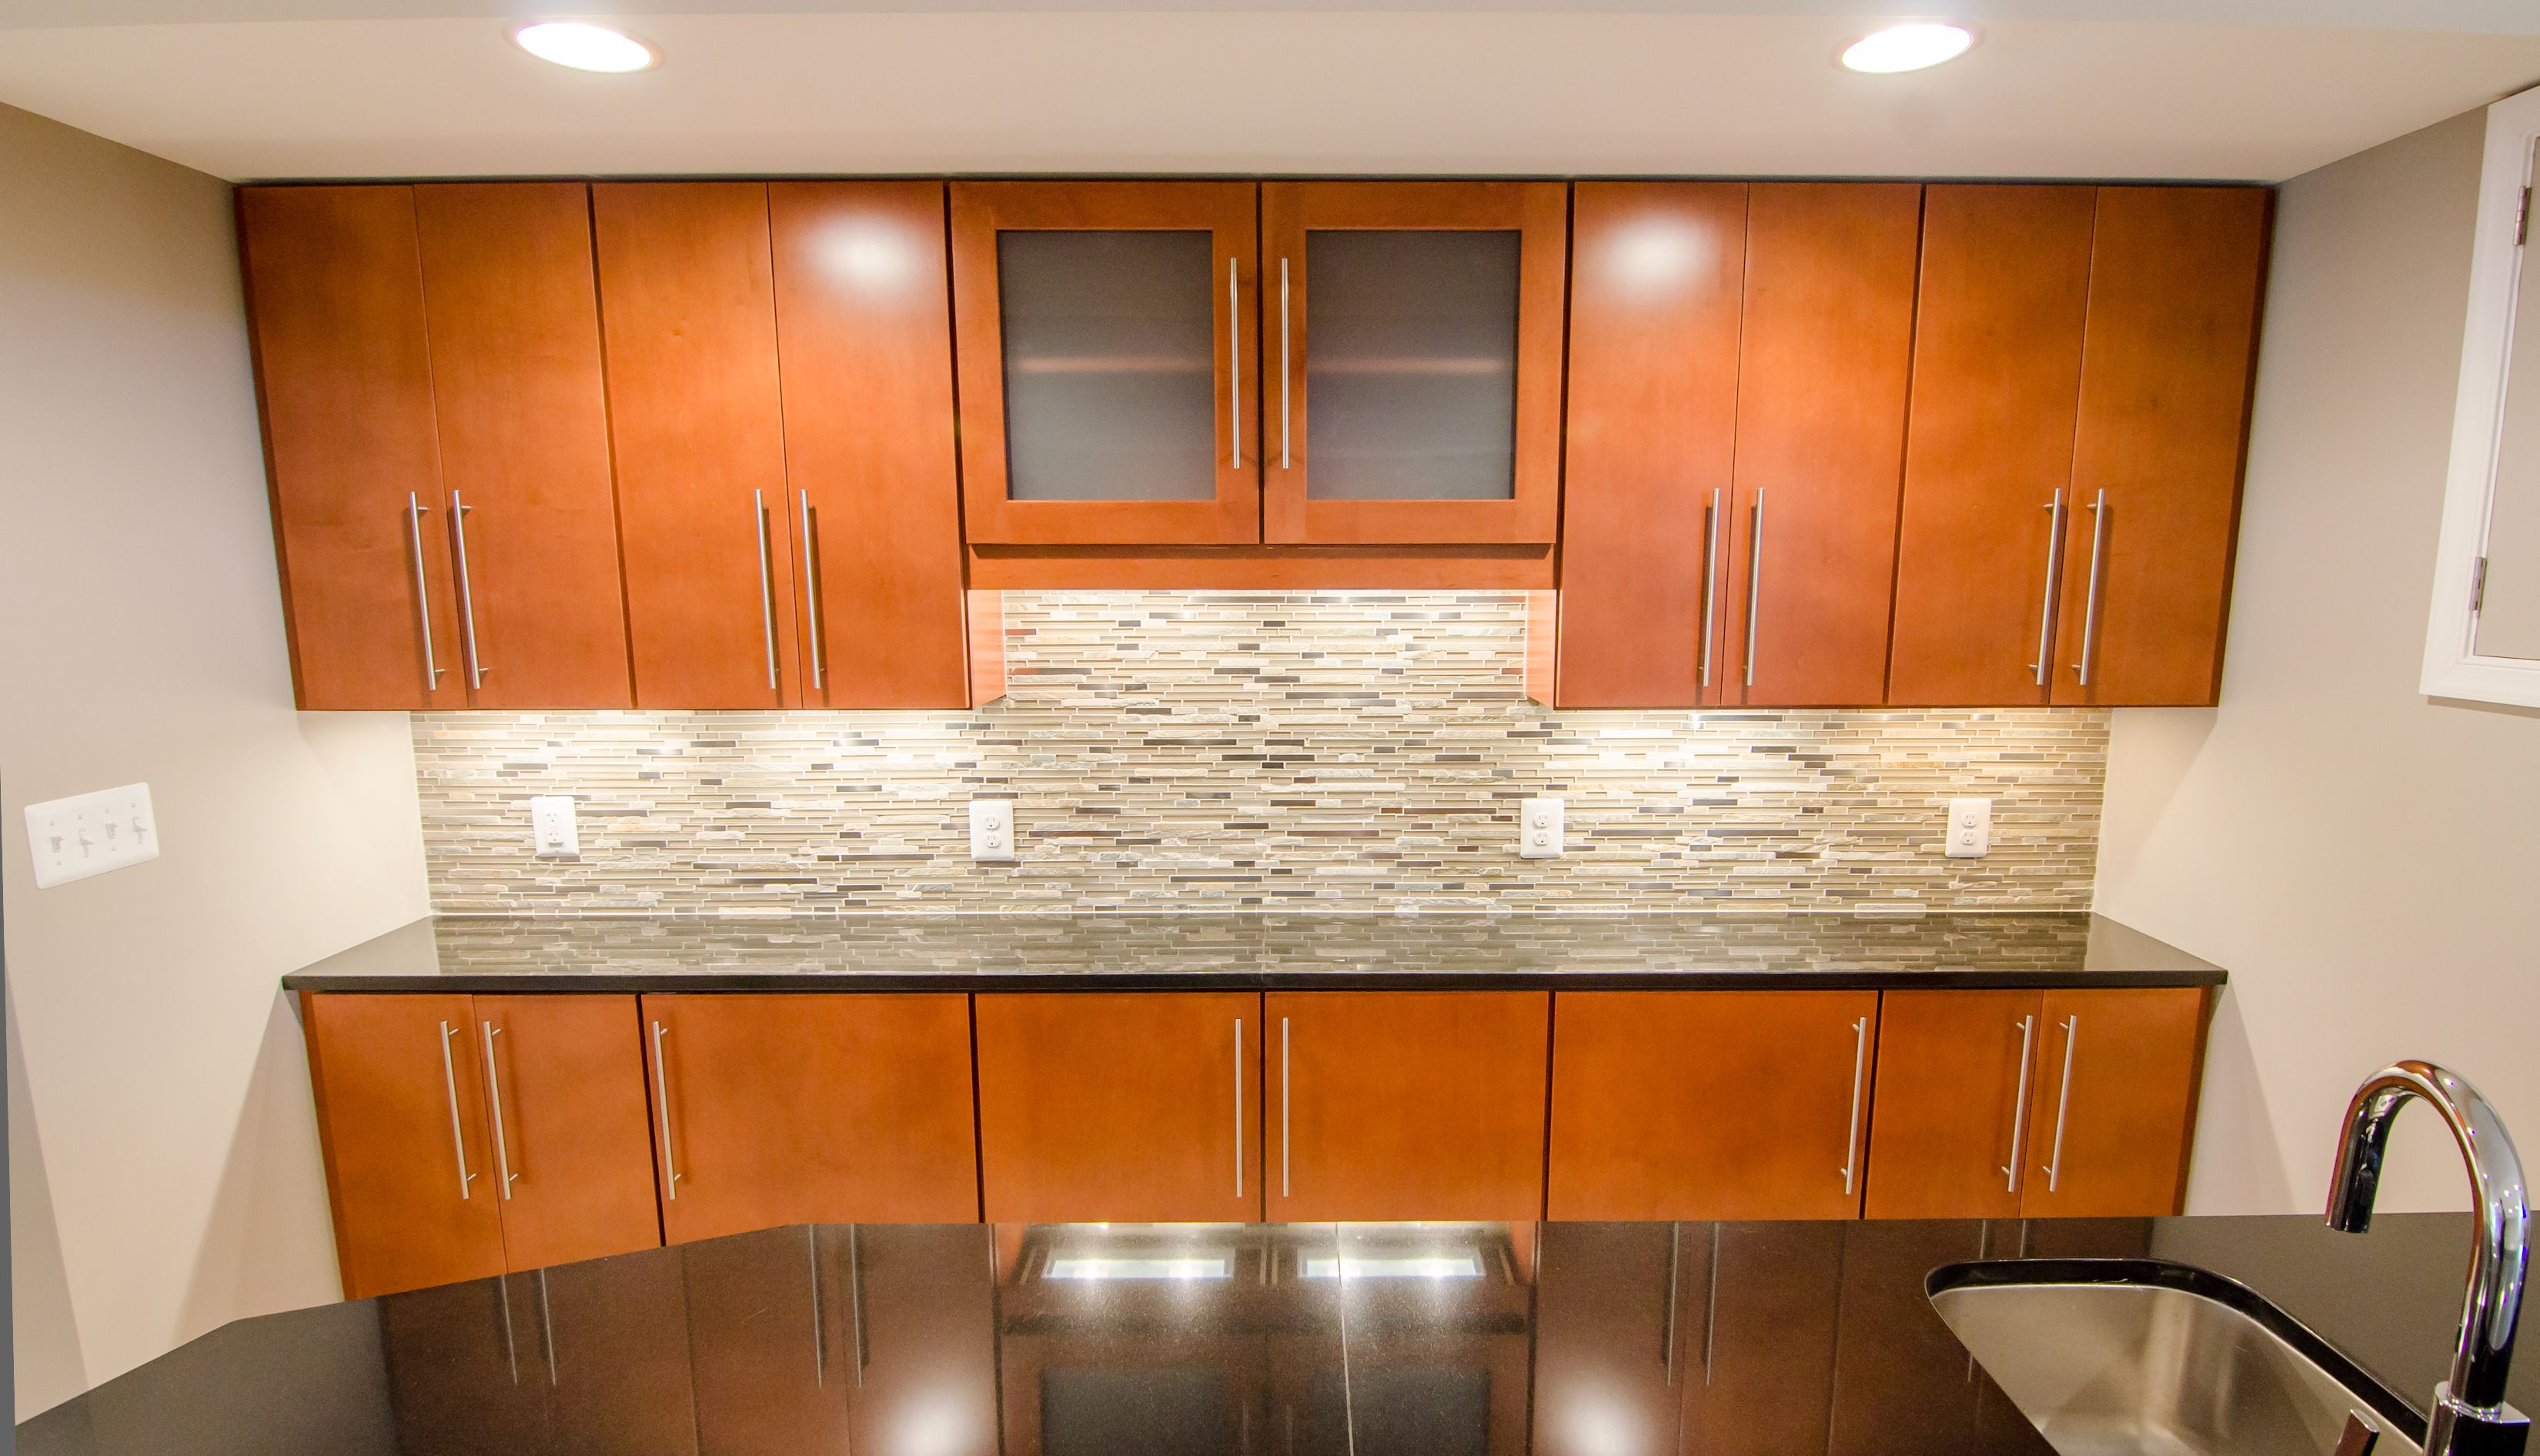 timberlake lausanne in maple cognac glaze kitchen cabinets